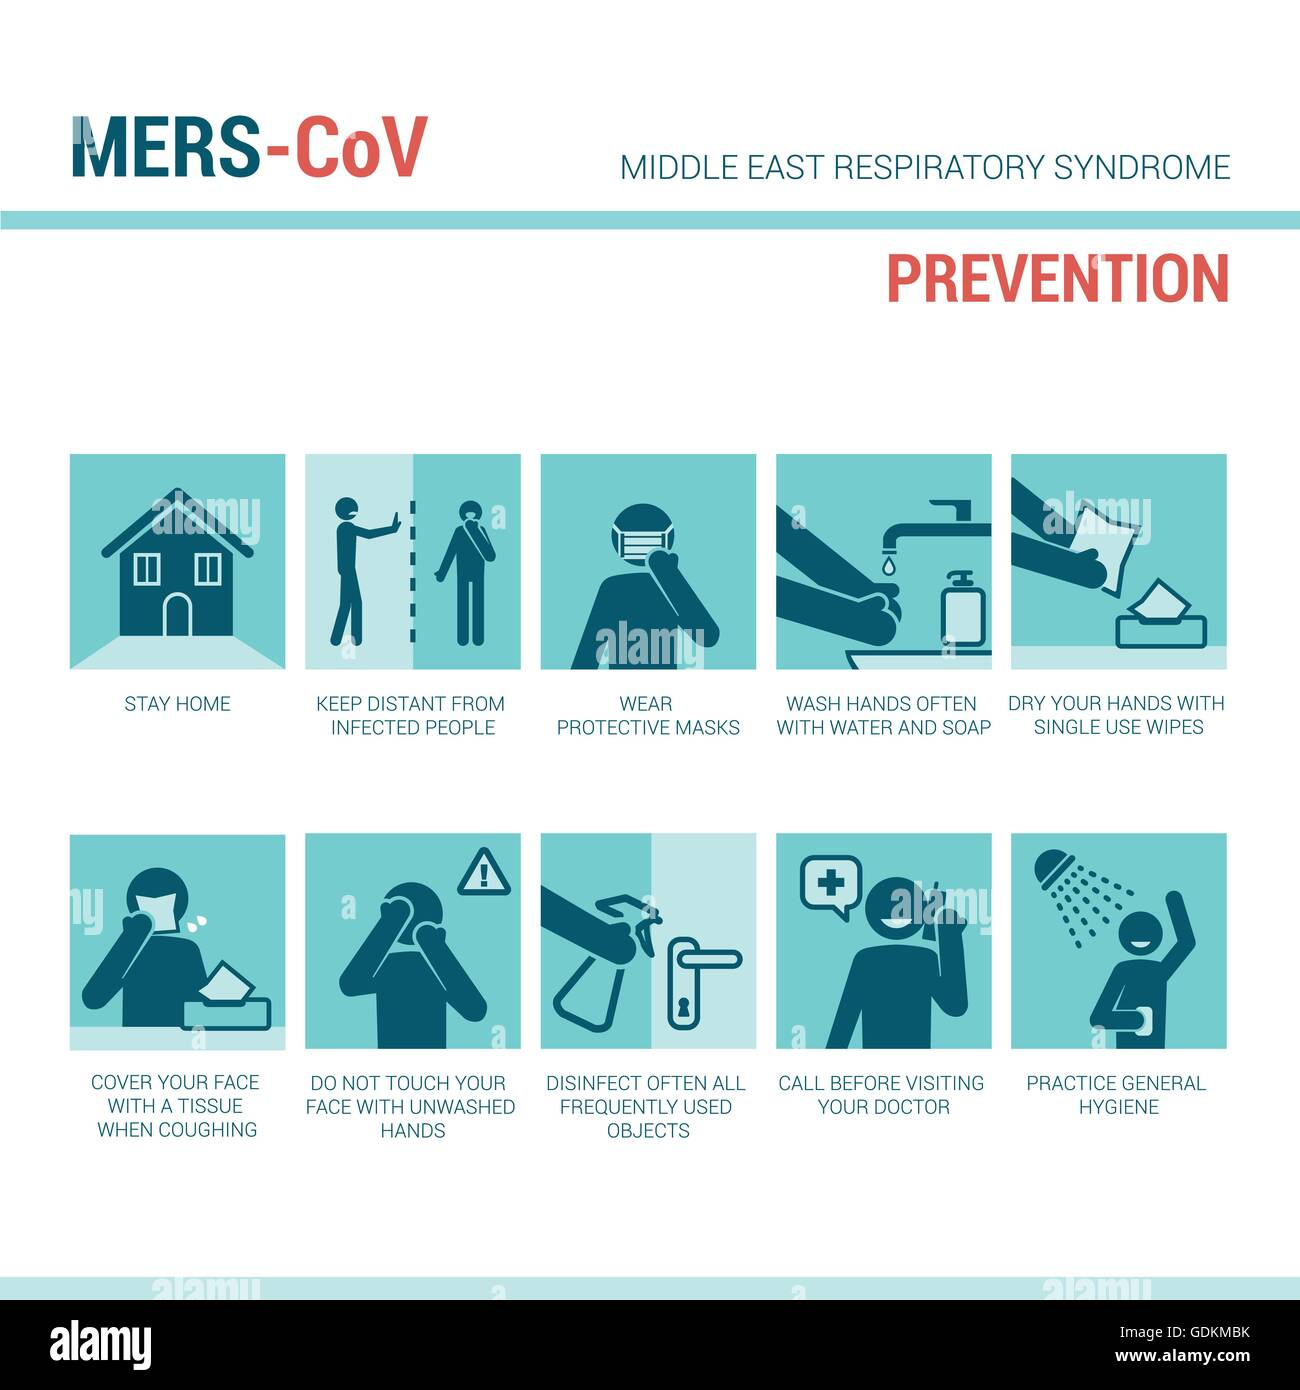 MERS_CoV prevention sign, illustrated medical procedures with stick figures to prevent virus spread - Stock Image